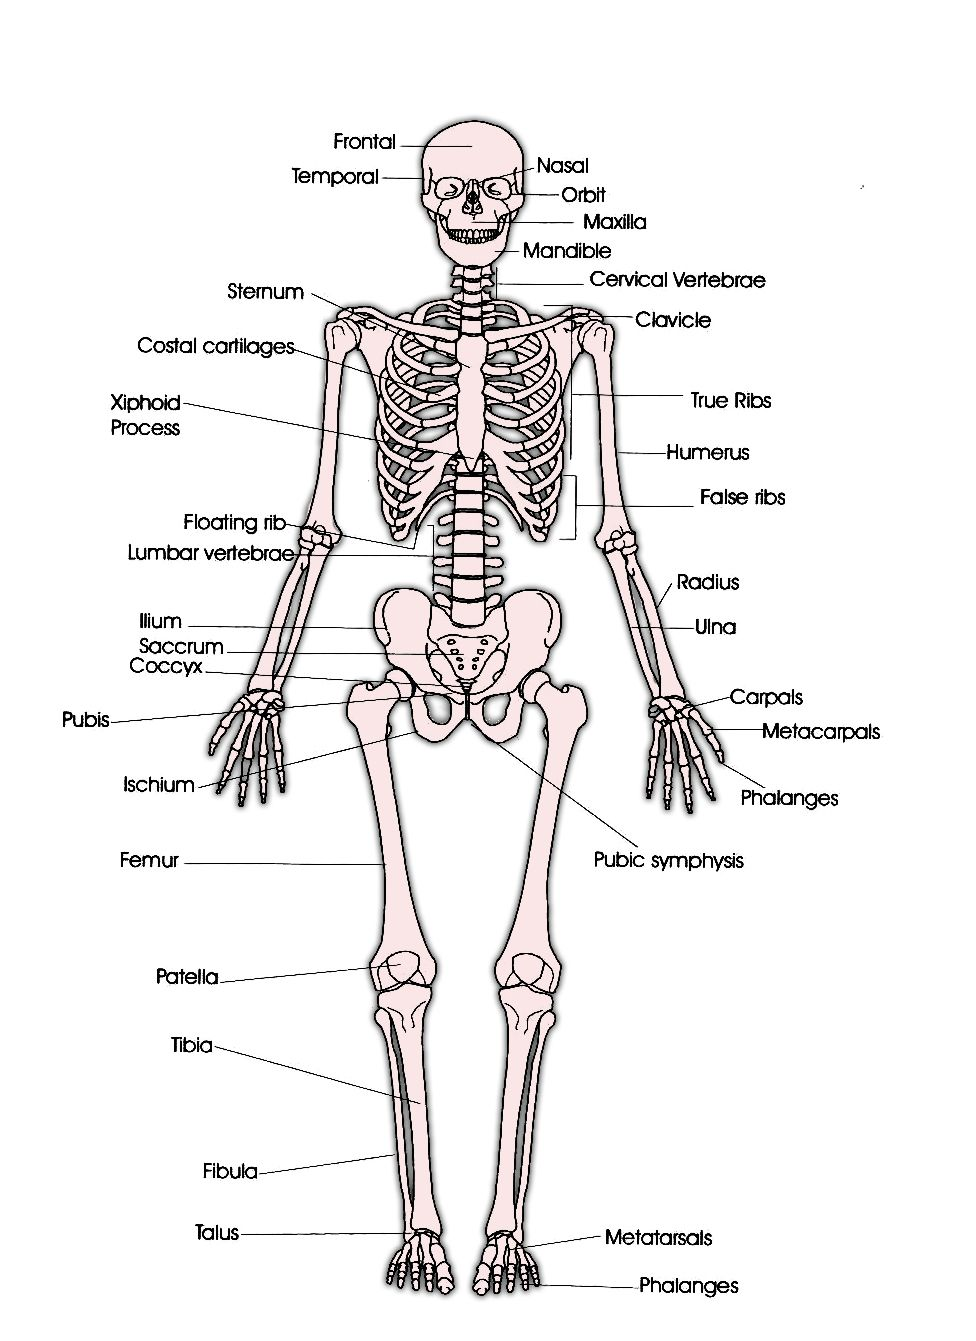 Skeletal anatomy diagram human skull electrical drawing wiring skeletal system labeled diagrams human skeleton the skeletal rh pinterest com human skeleton diagram rear view ccuart